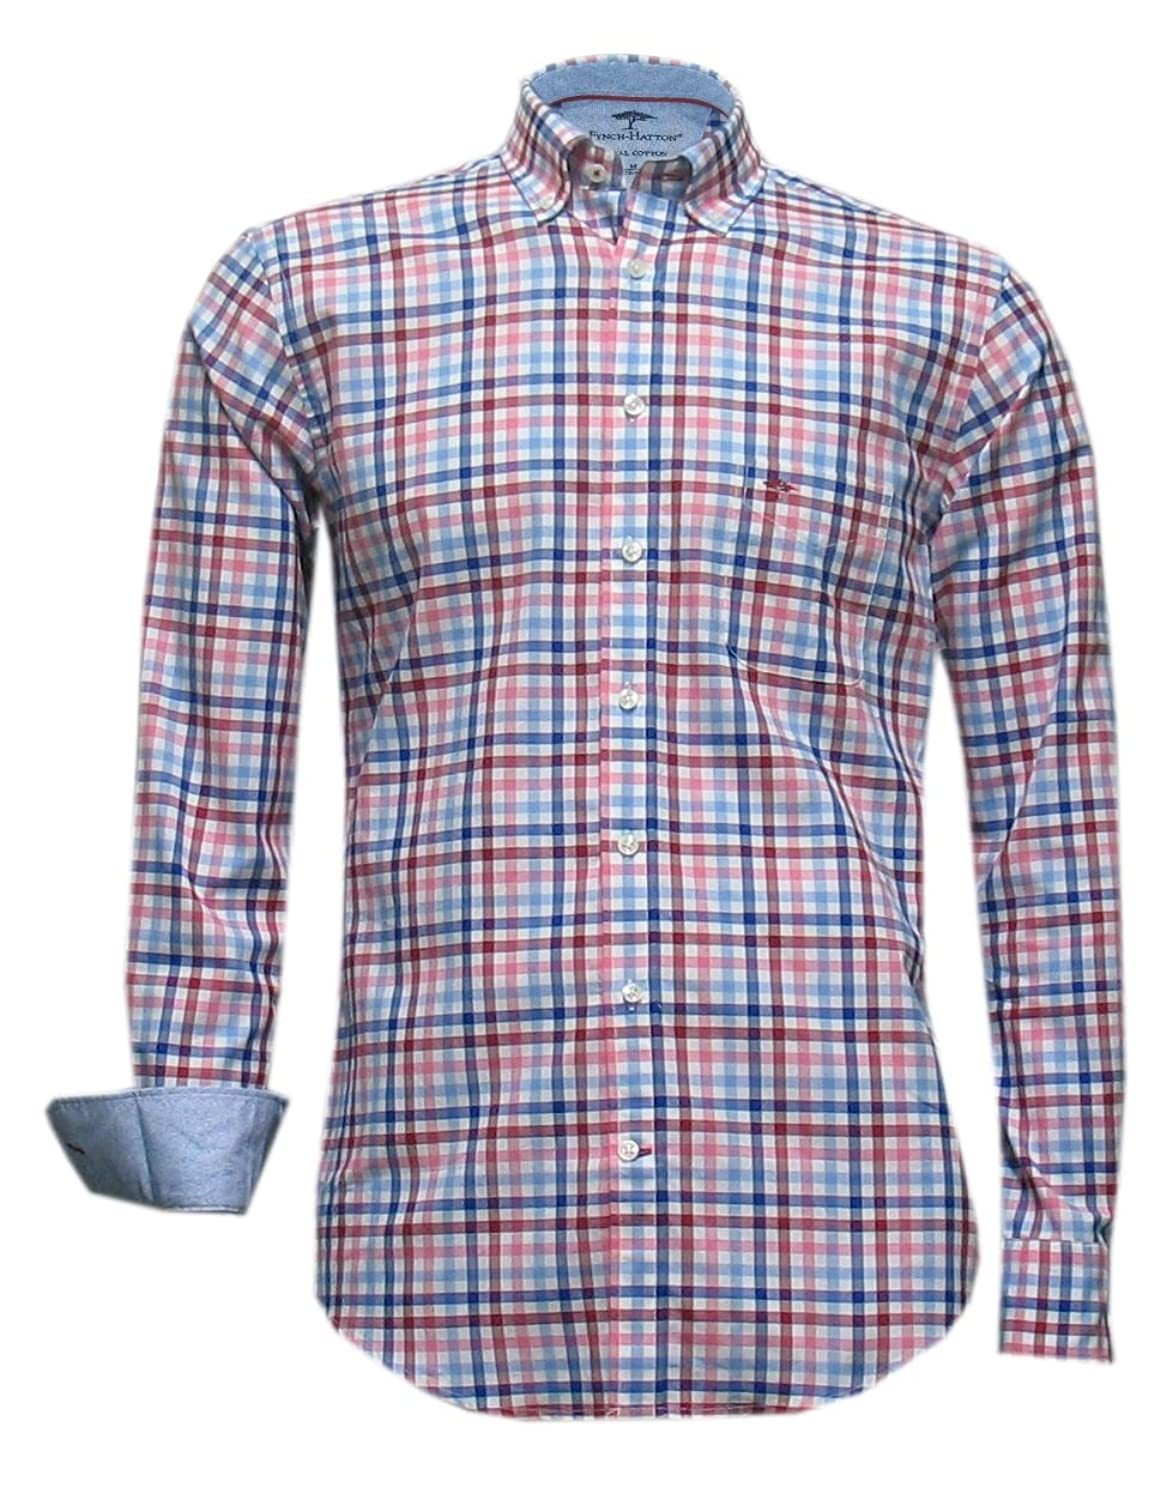 New Autumn 2016 Fynch-Hatton Shirt - Berry Blue Check